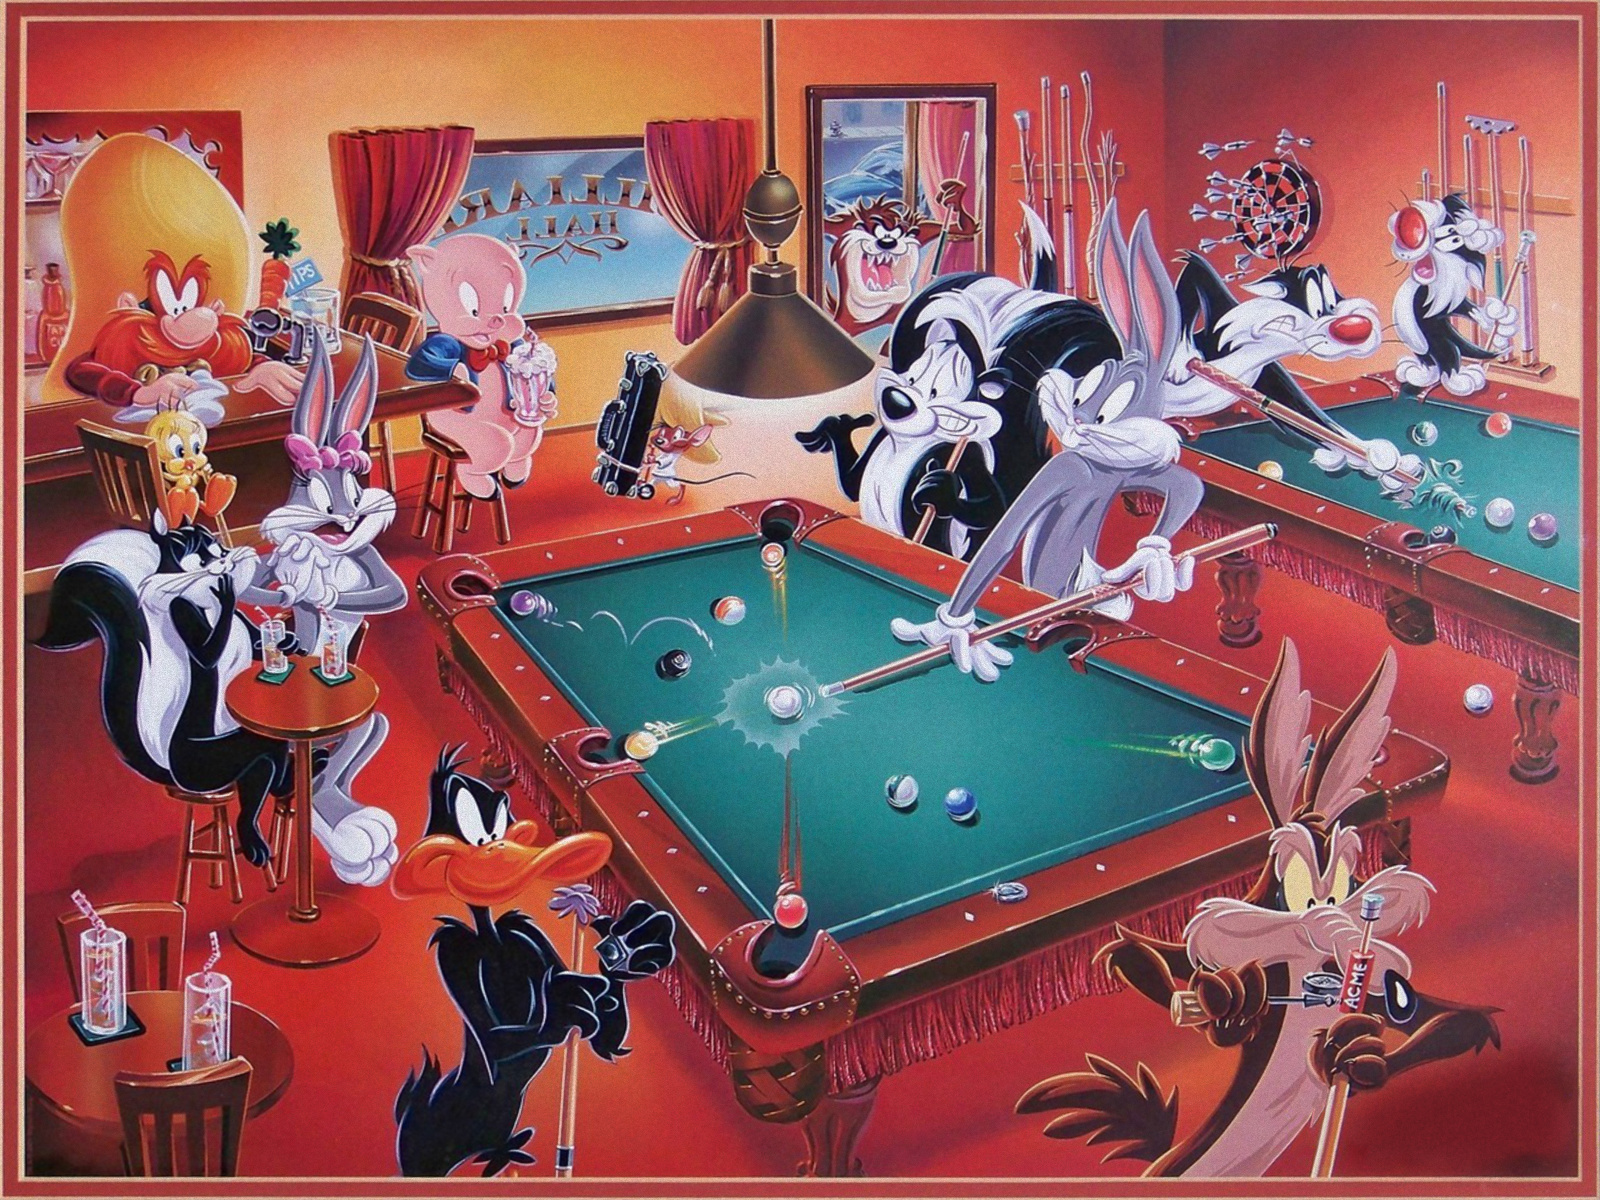 Looney tunes billiads wallpaper and background image - Looney tunes background ...